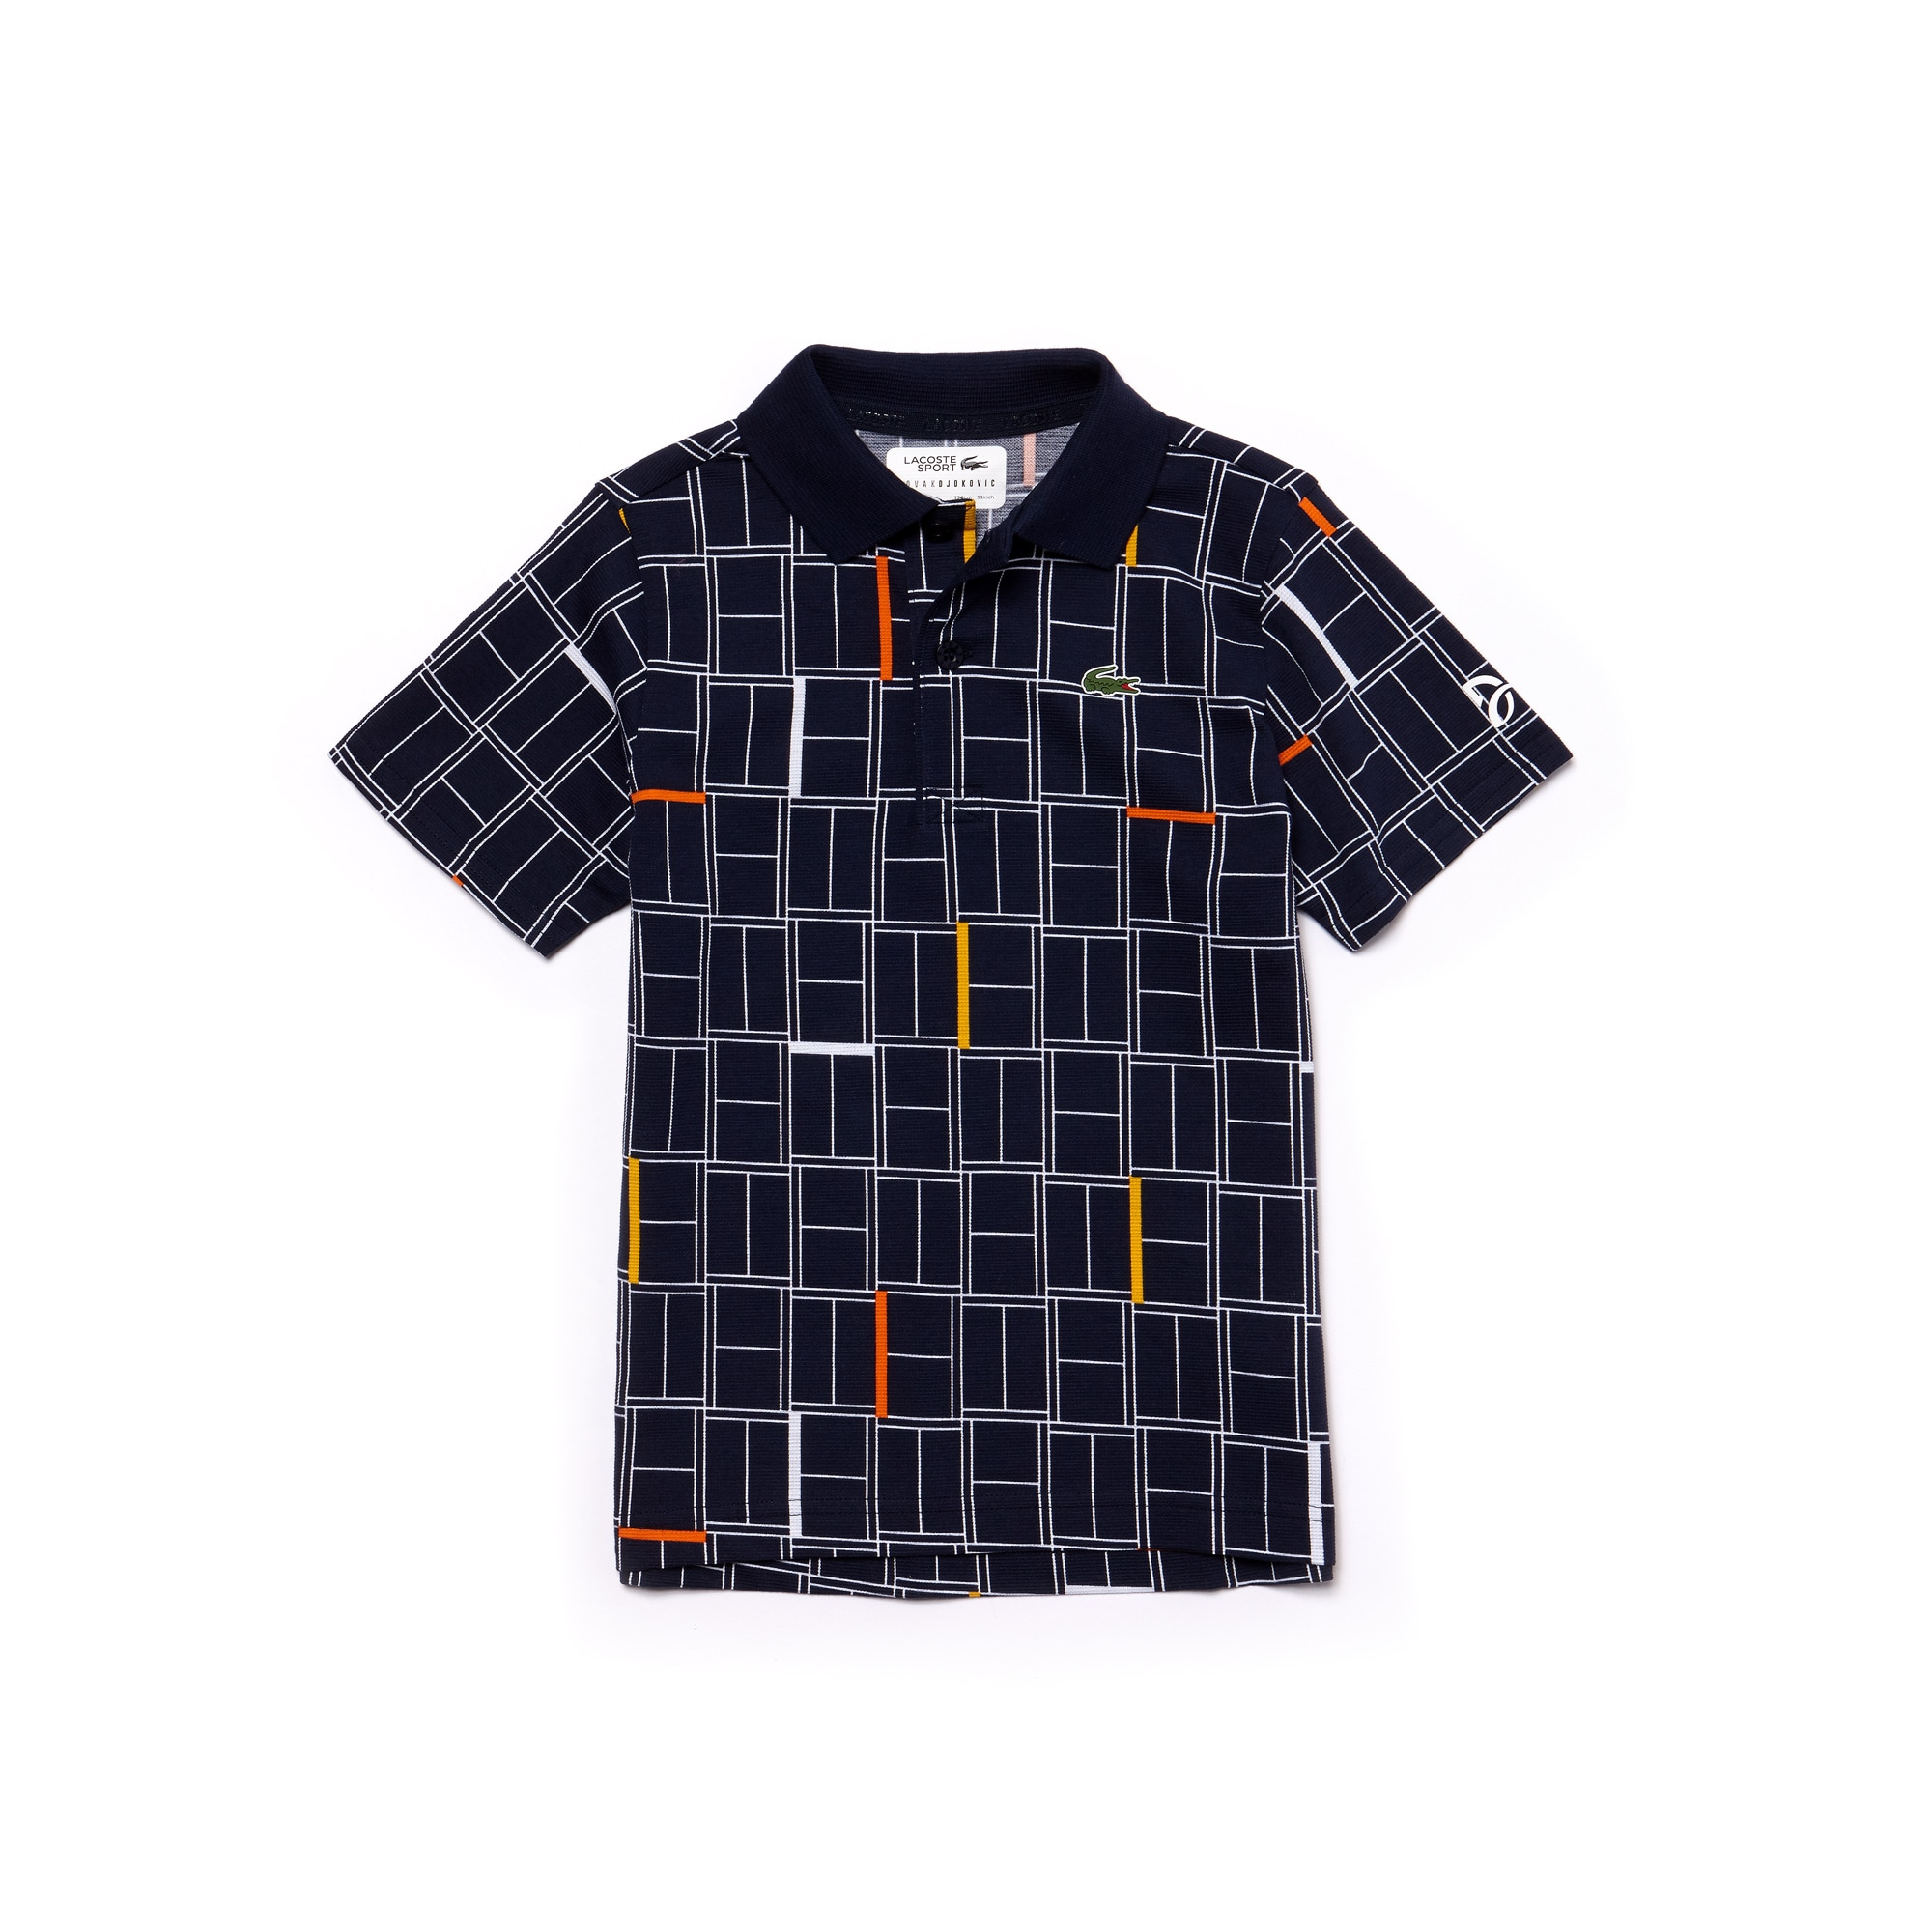 Boys' LACOSTE SPORT NOVAK DJOKOVIC COLLECTION Print Light Cotton Polo Shirt